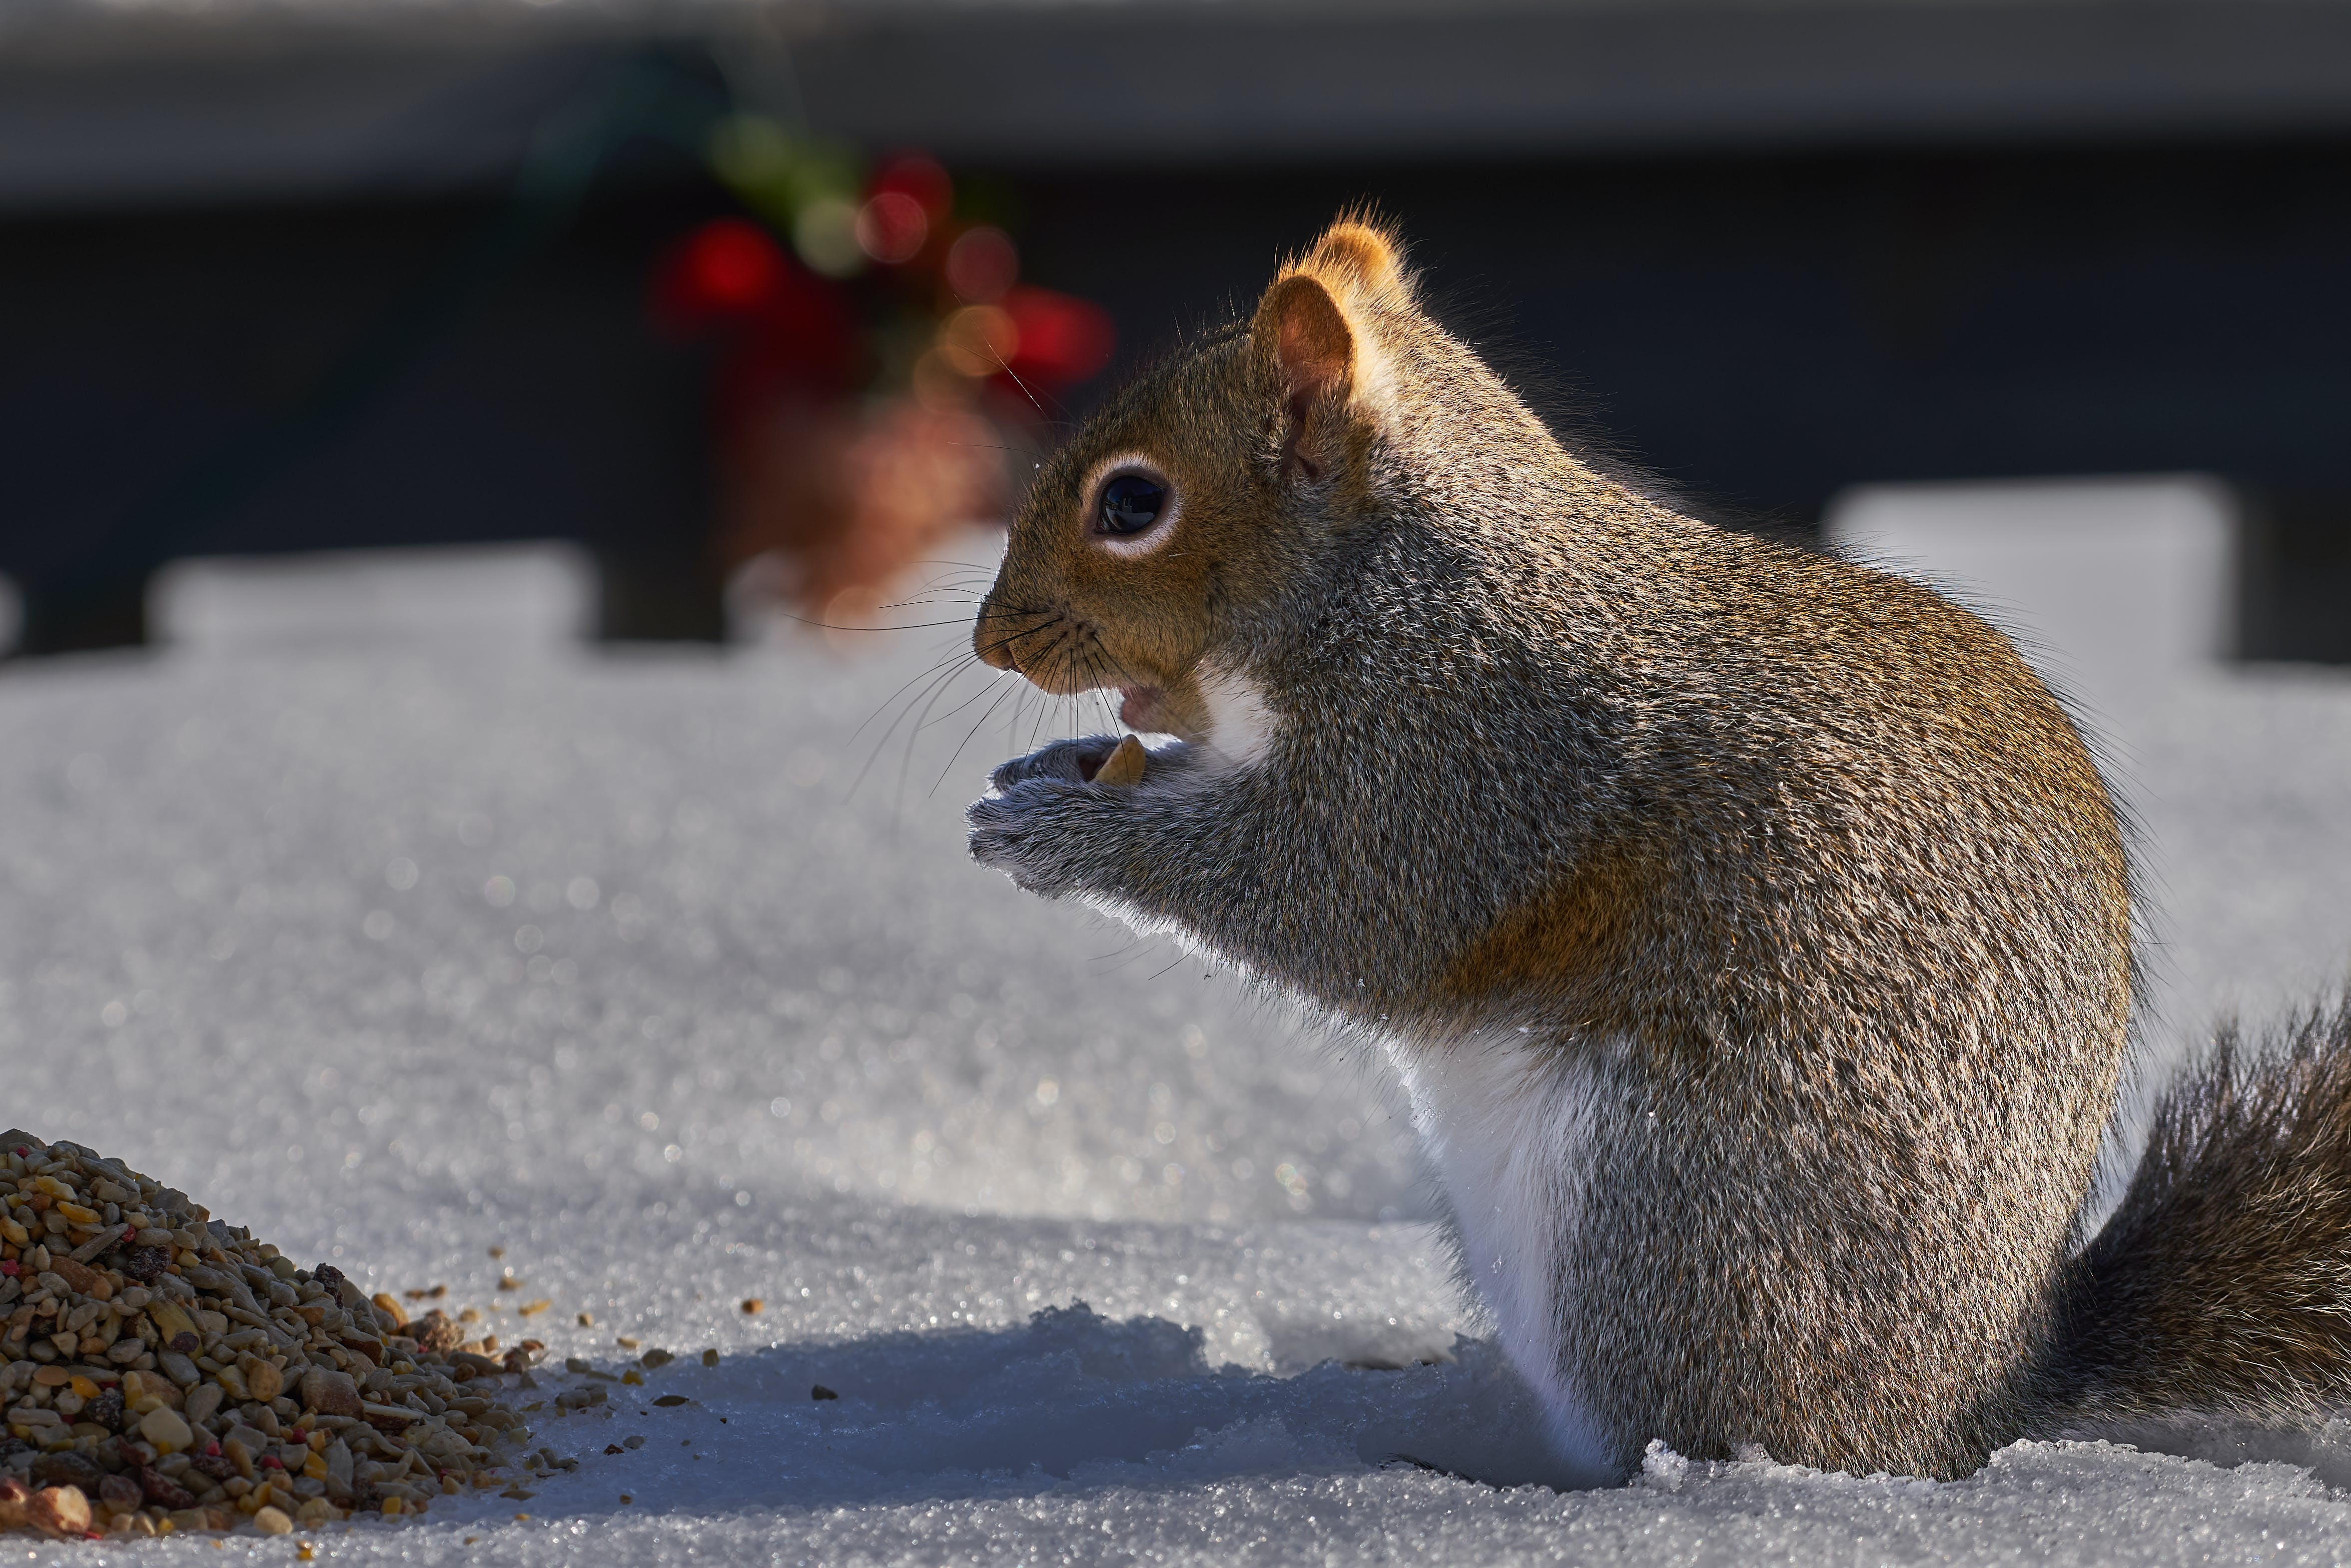 Free stock photo of squirrel, winter